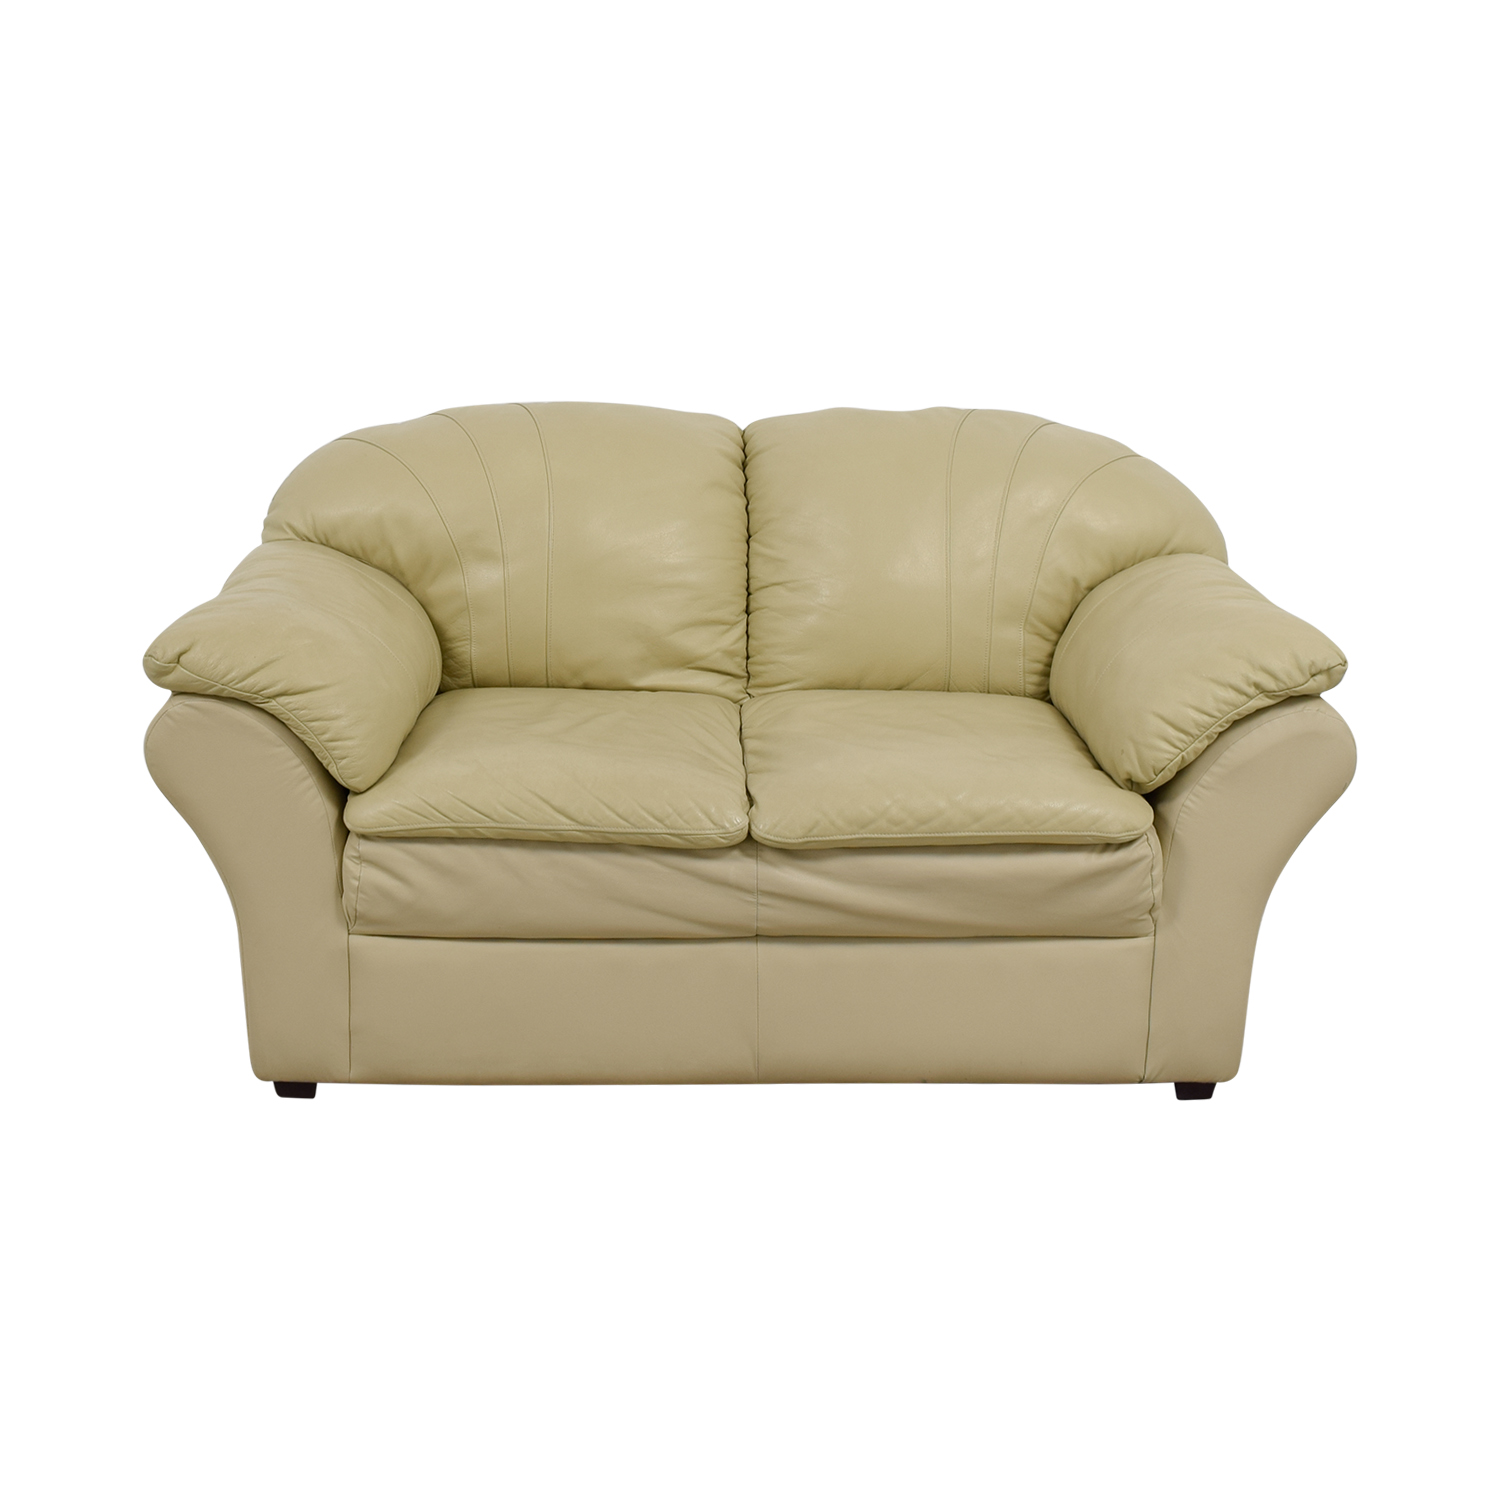 Mal's Brooklyn Furniture Mal's Brooklyn Furniture Vanilla Leather Love Seat coupon